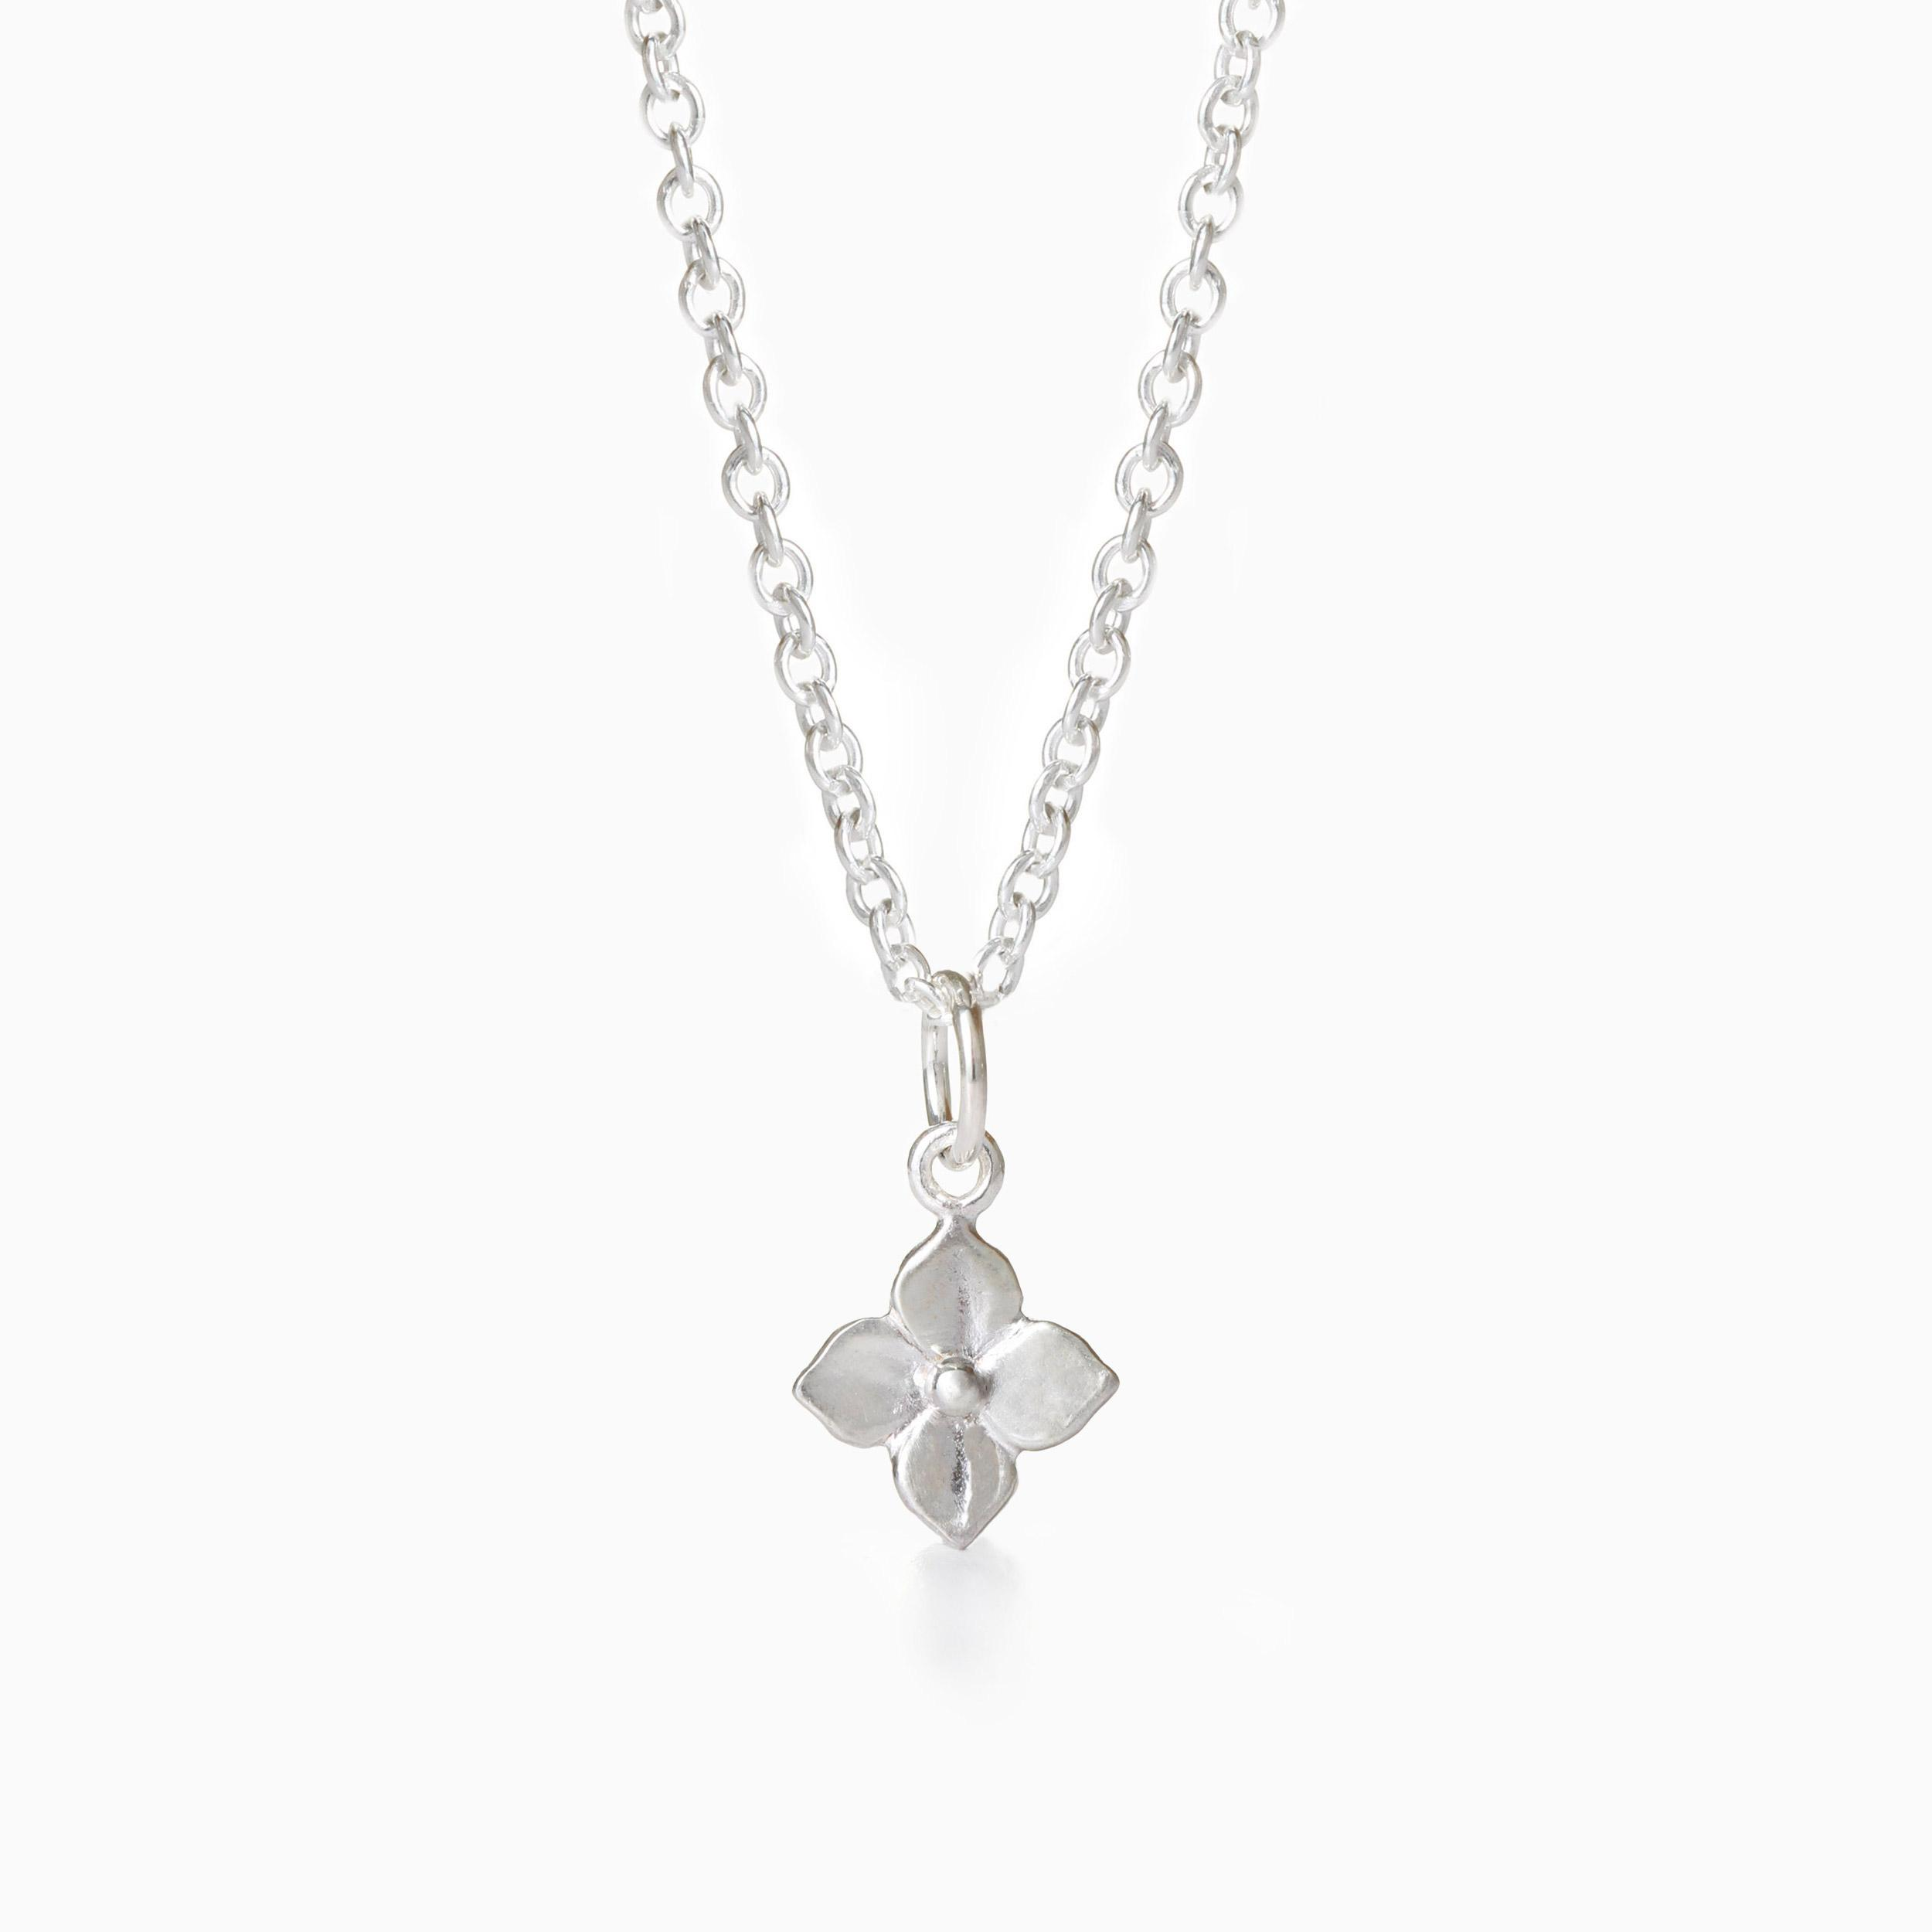 Hydrangea Sterling Silver Necklace made by Winter in July